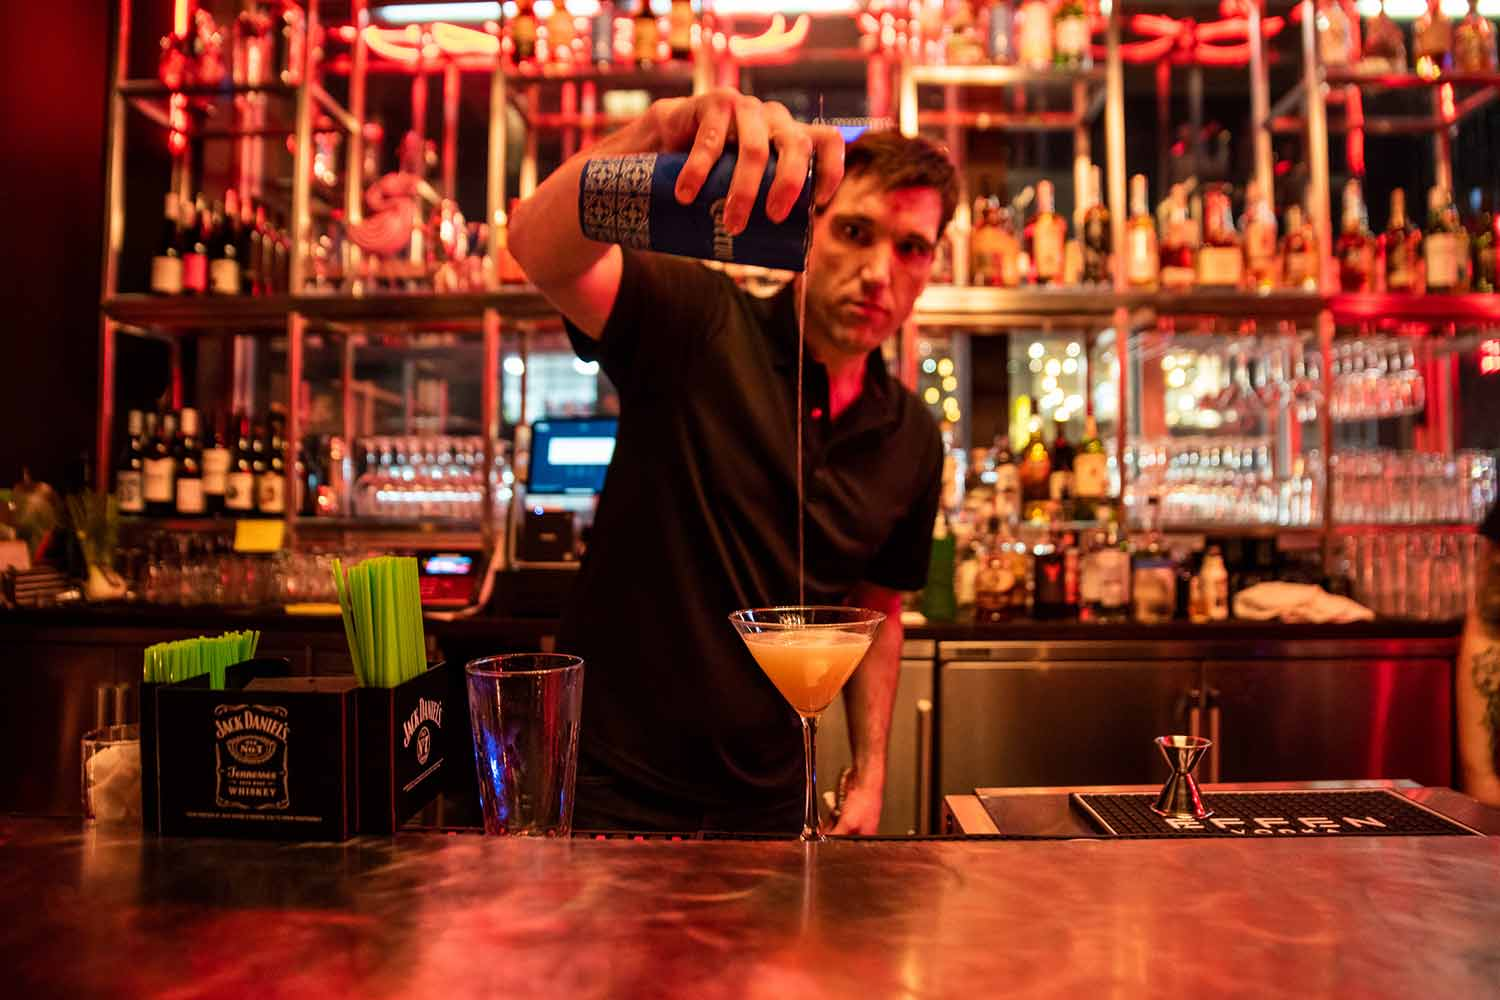 A bartender prepares a cocktail at the back bar